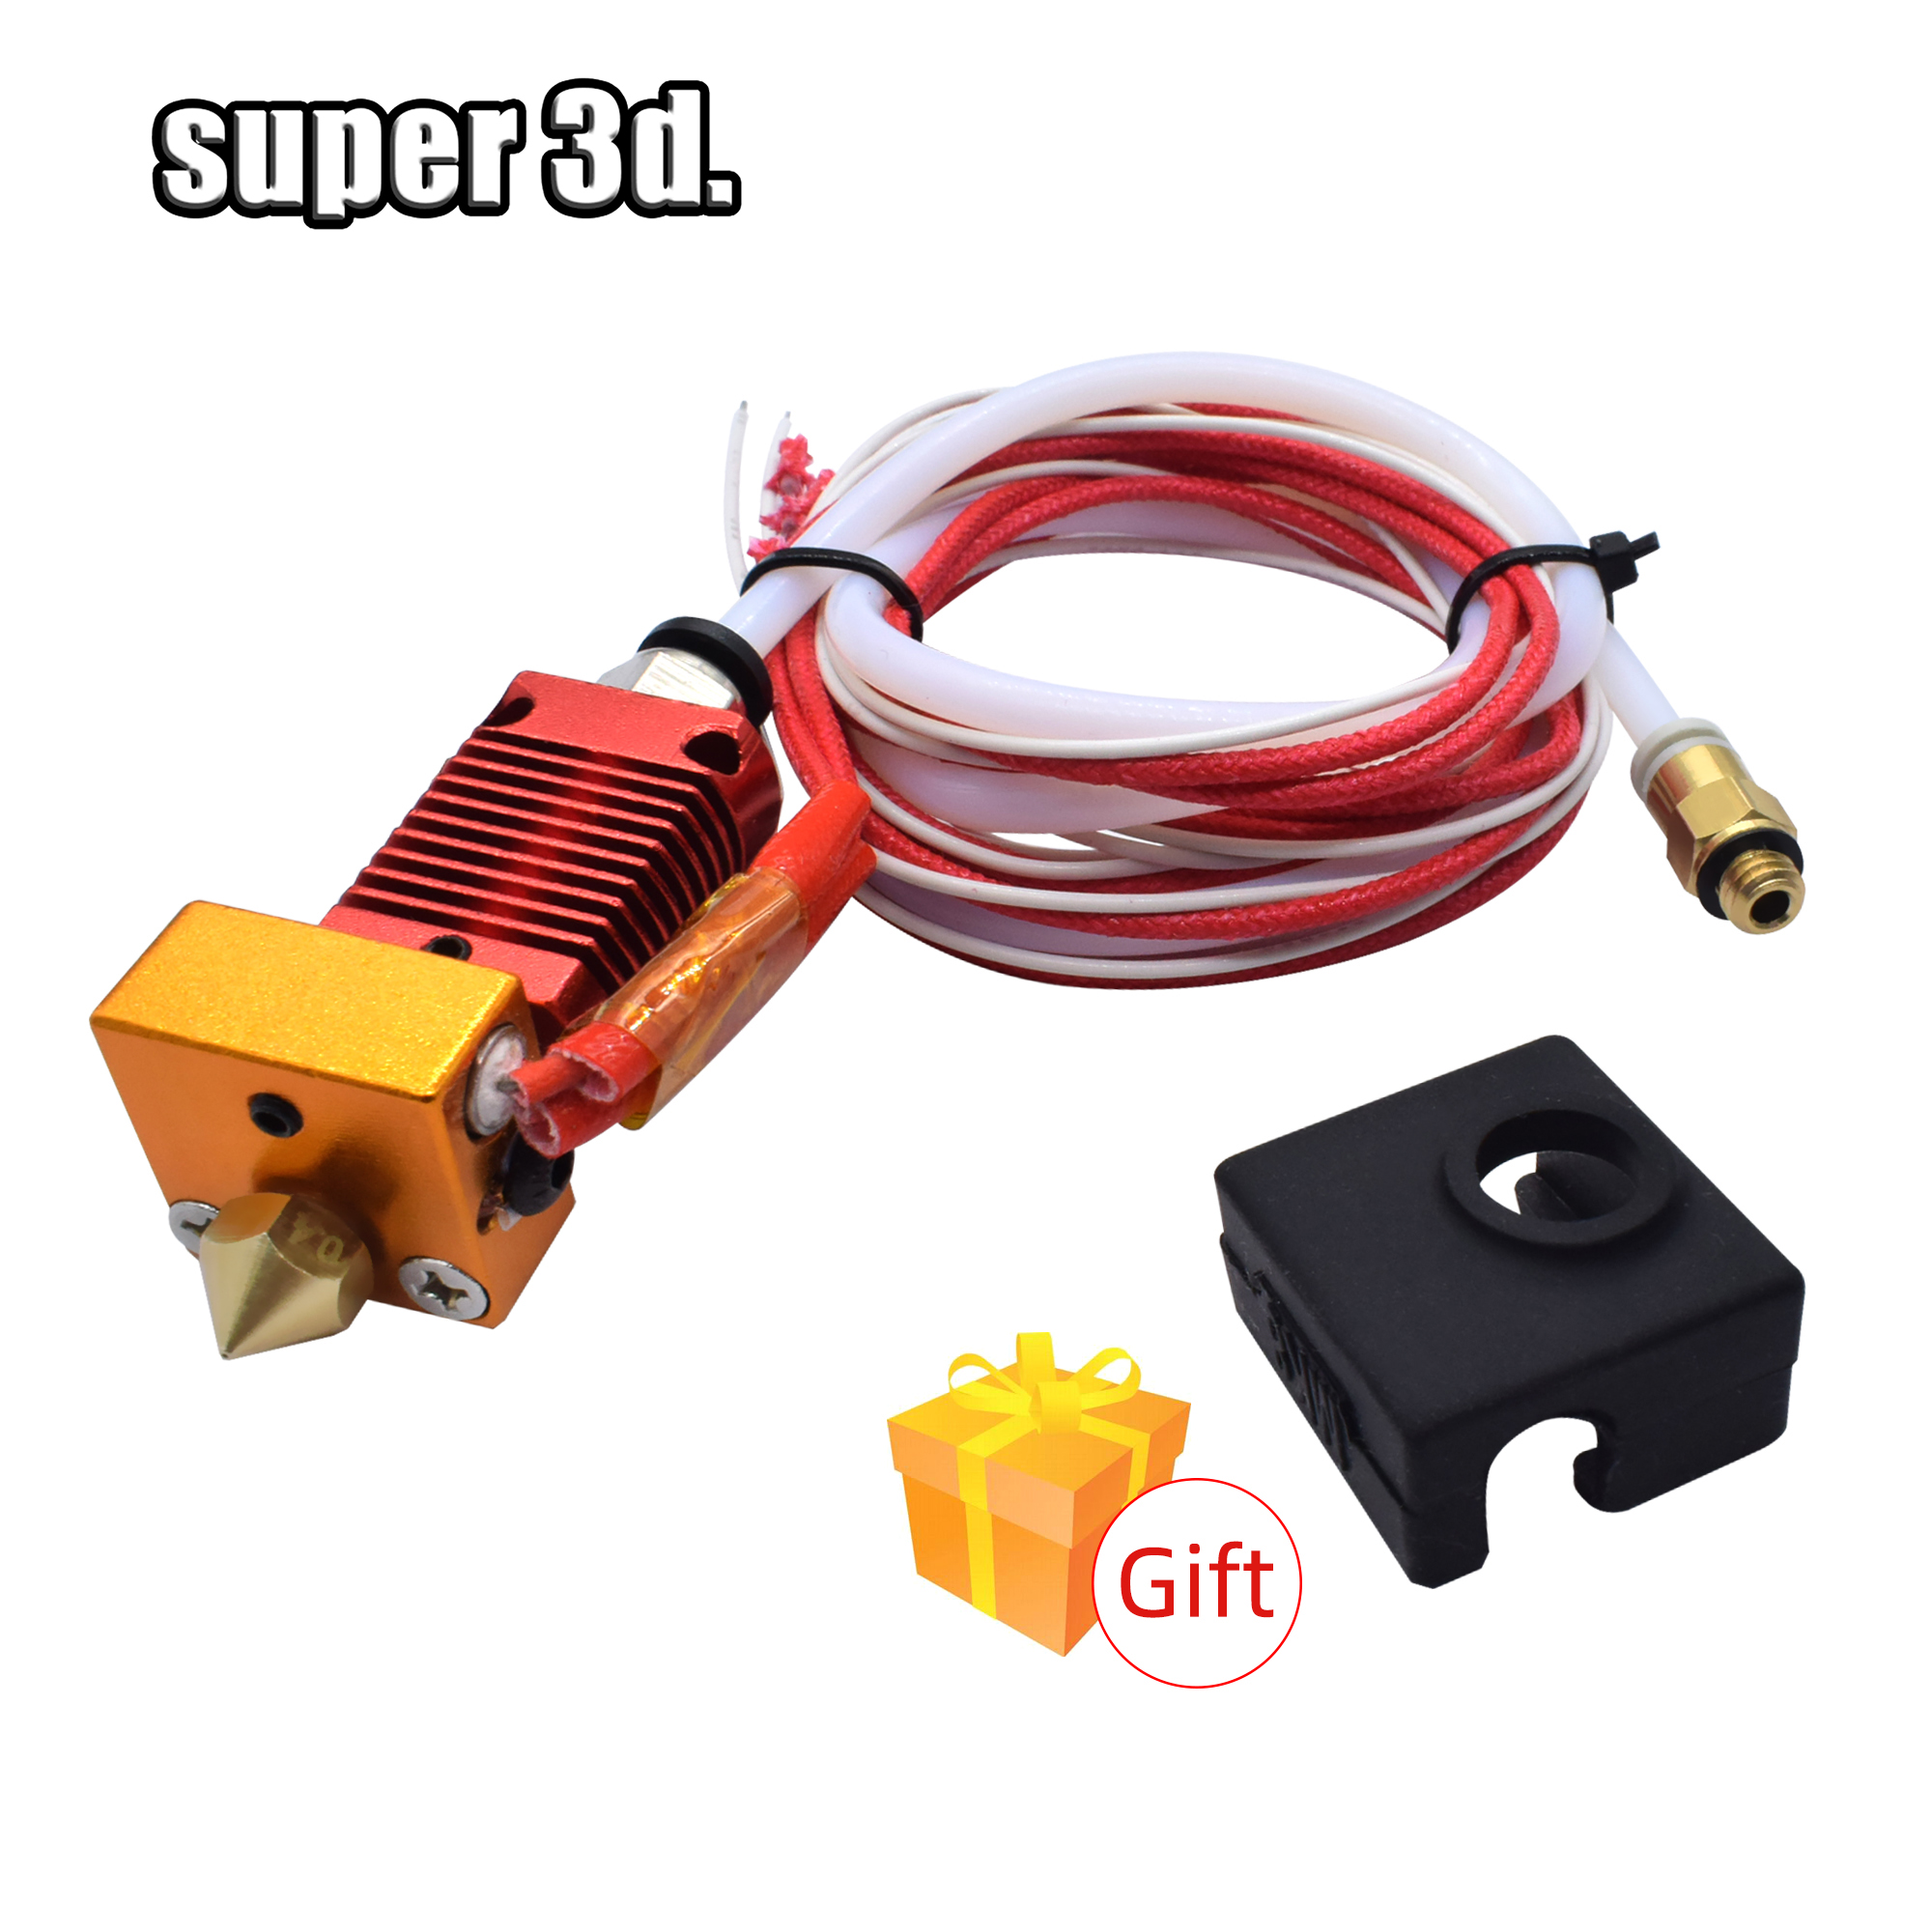 3D Full Metal J-head CR10 Hotend Extrude Hot End Kit for creality Ender-3 5 pro CR10 10s Bowden Extruder 12 24V 3D Printer Parts